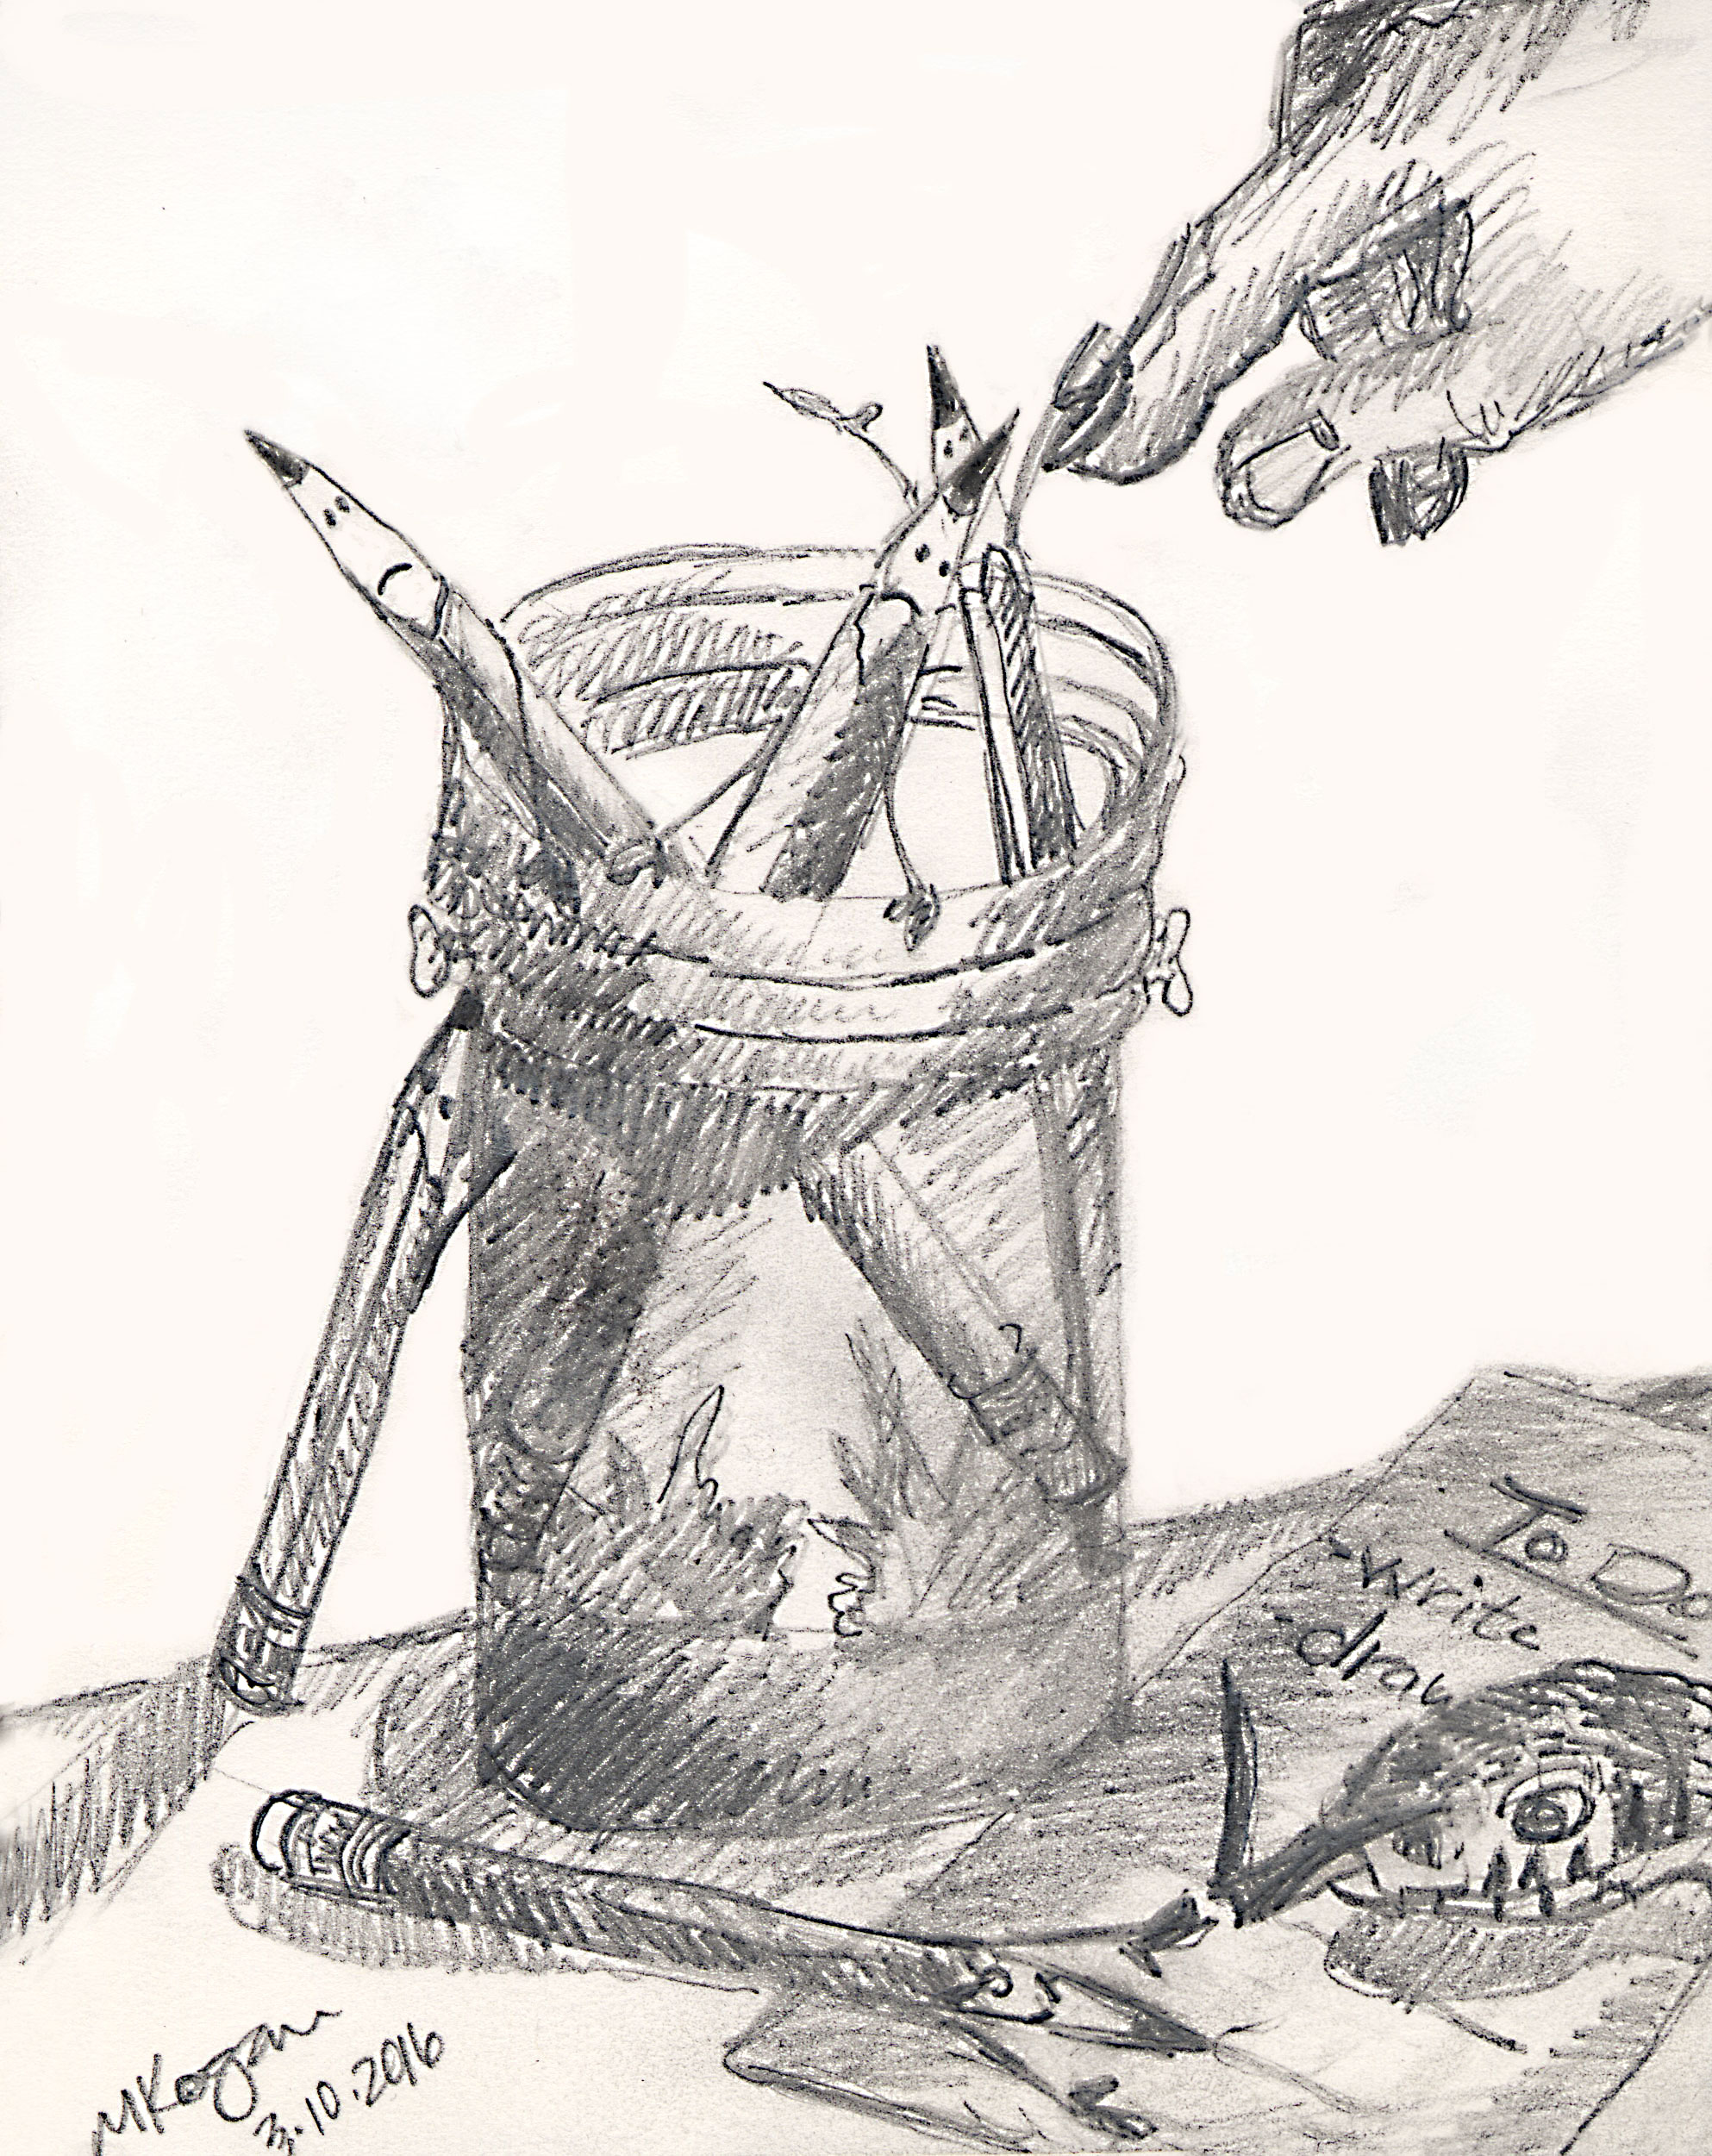 Unpretentious Pencil  © 2016 Michelle Kogan  Pencils peering out  waiting patiently for their purpose, or a person's poppycock to not so pleasingly pour  out… But wait there's more, those indescribable words winding off their points, even poppycock might  please an unpretentious  pencil. And still more… The sketch that dances off the tip, sends the tool into a tizzy for an eternity, till…   Exhausted, pencil rests, catches breath, and waits again patiently, with fellow pencils to be discovered once more…